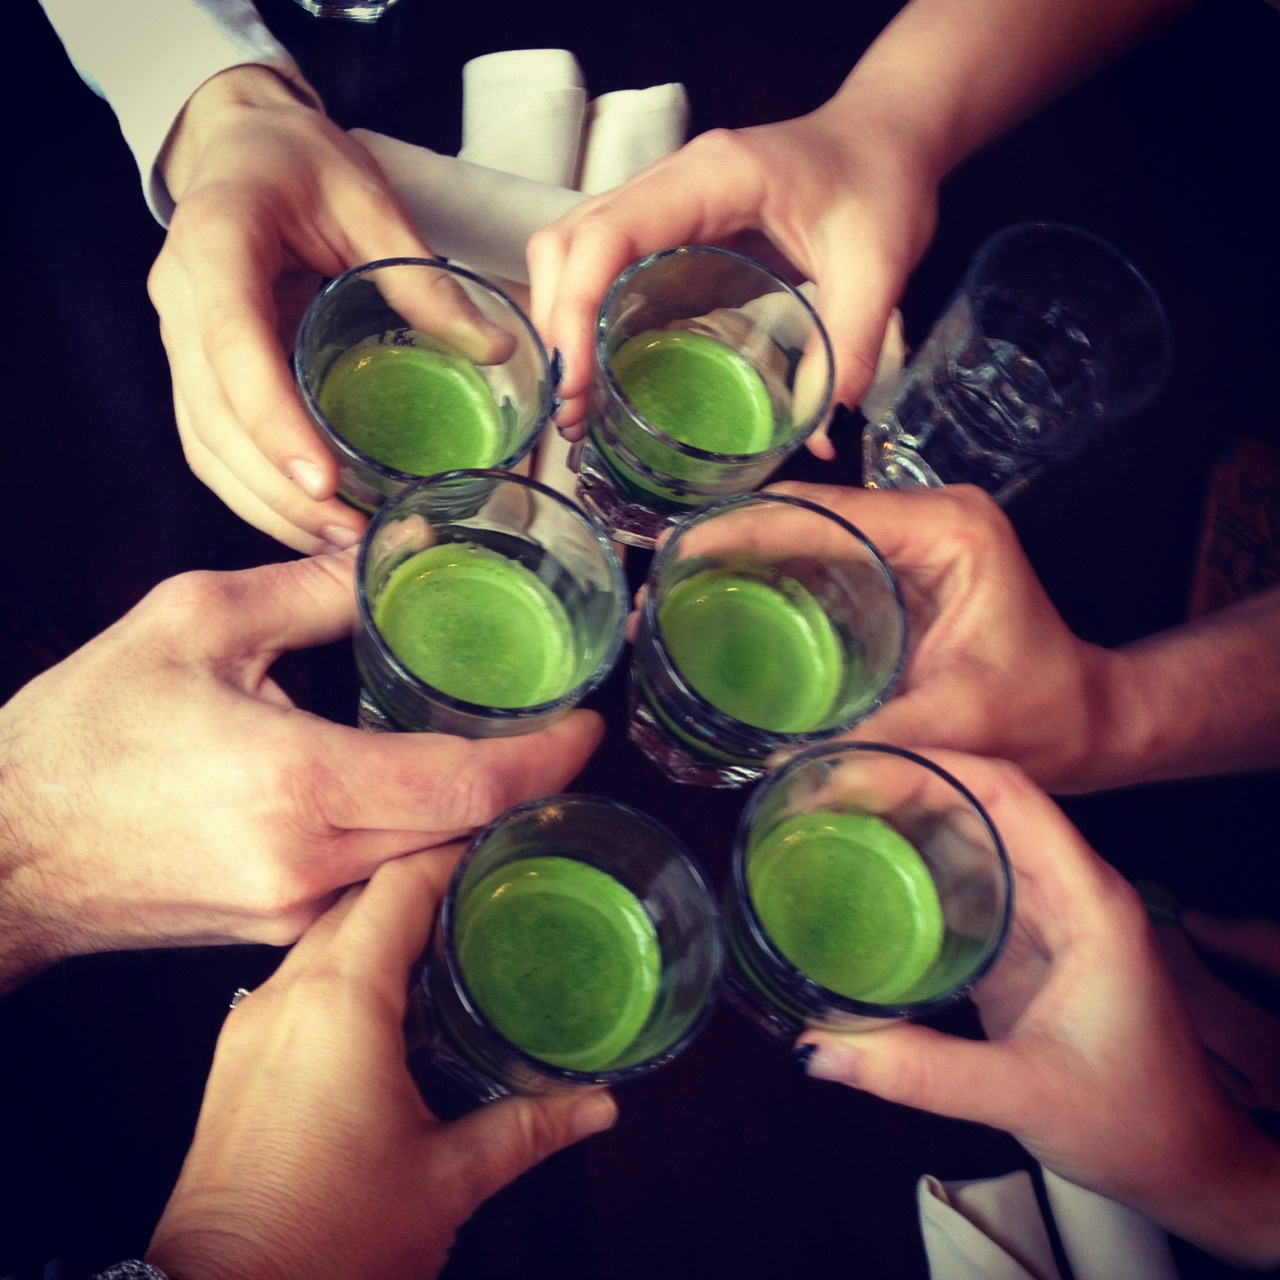 The Green Shot wheatgrass party